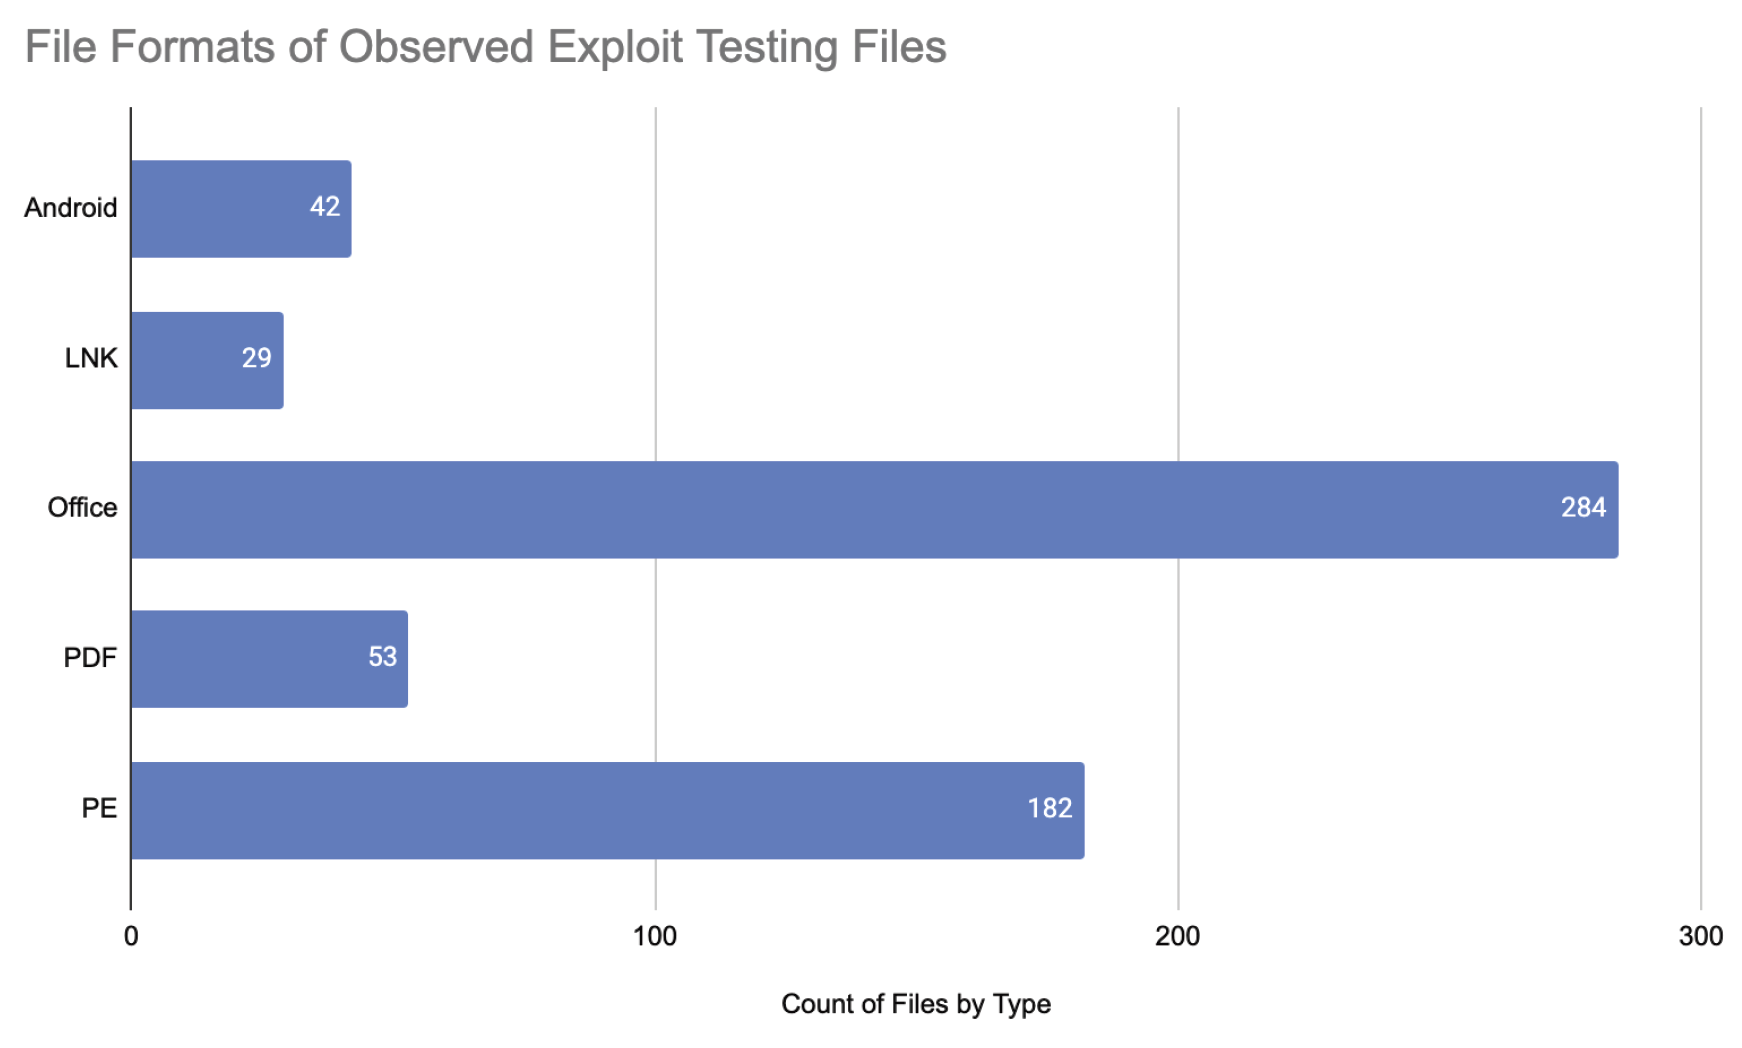 File Formats of Observed Exploit Testing Files